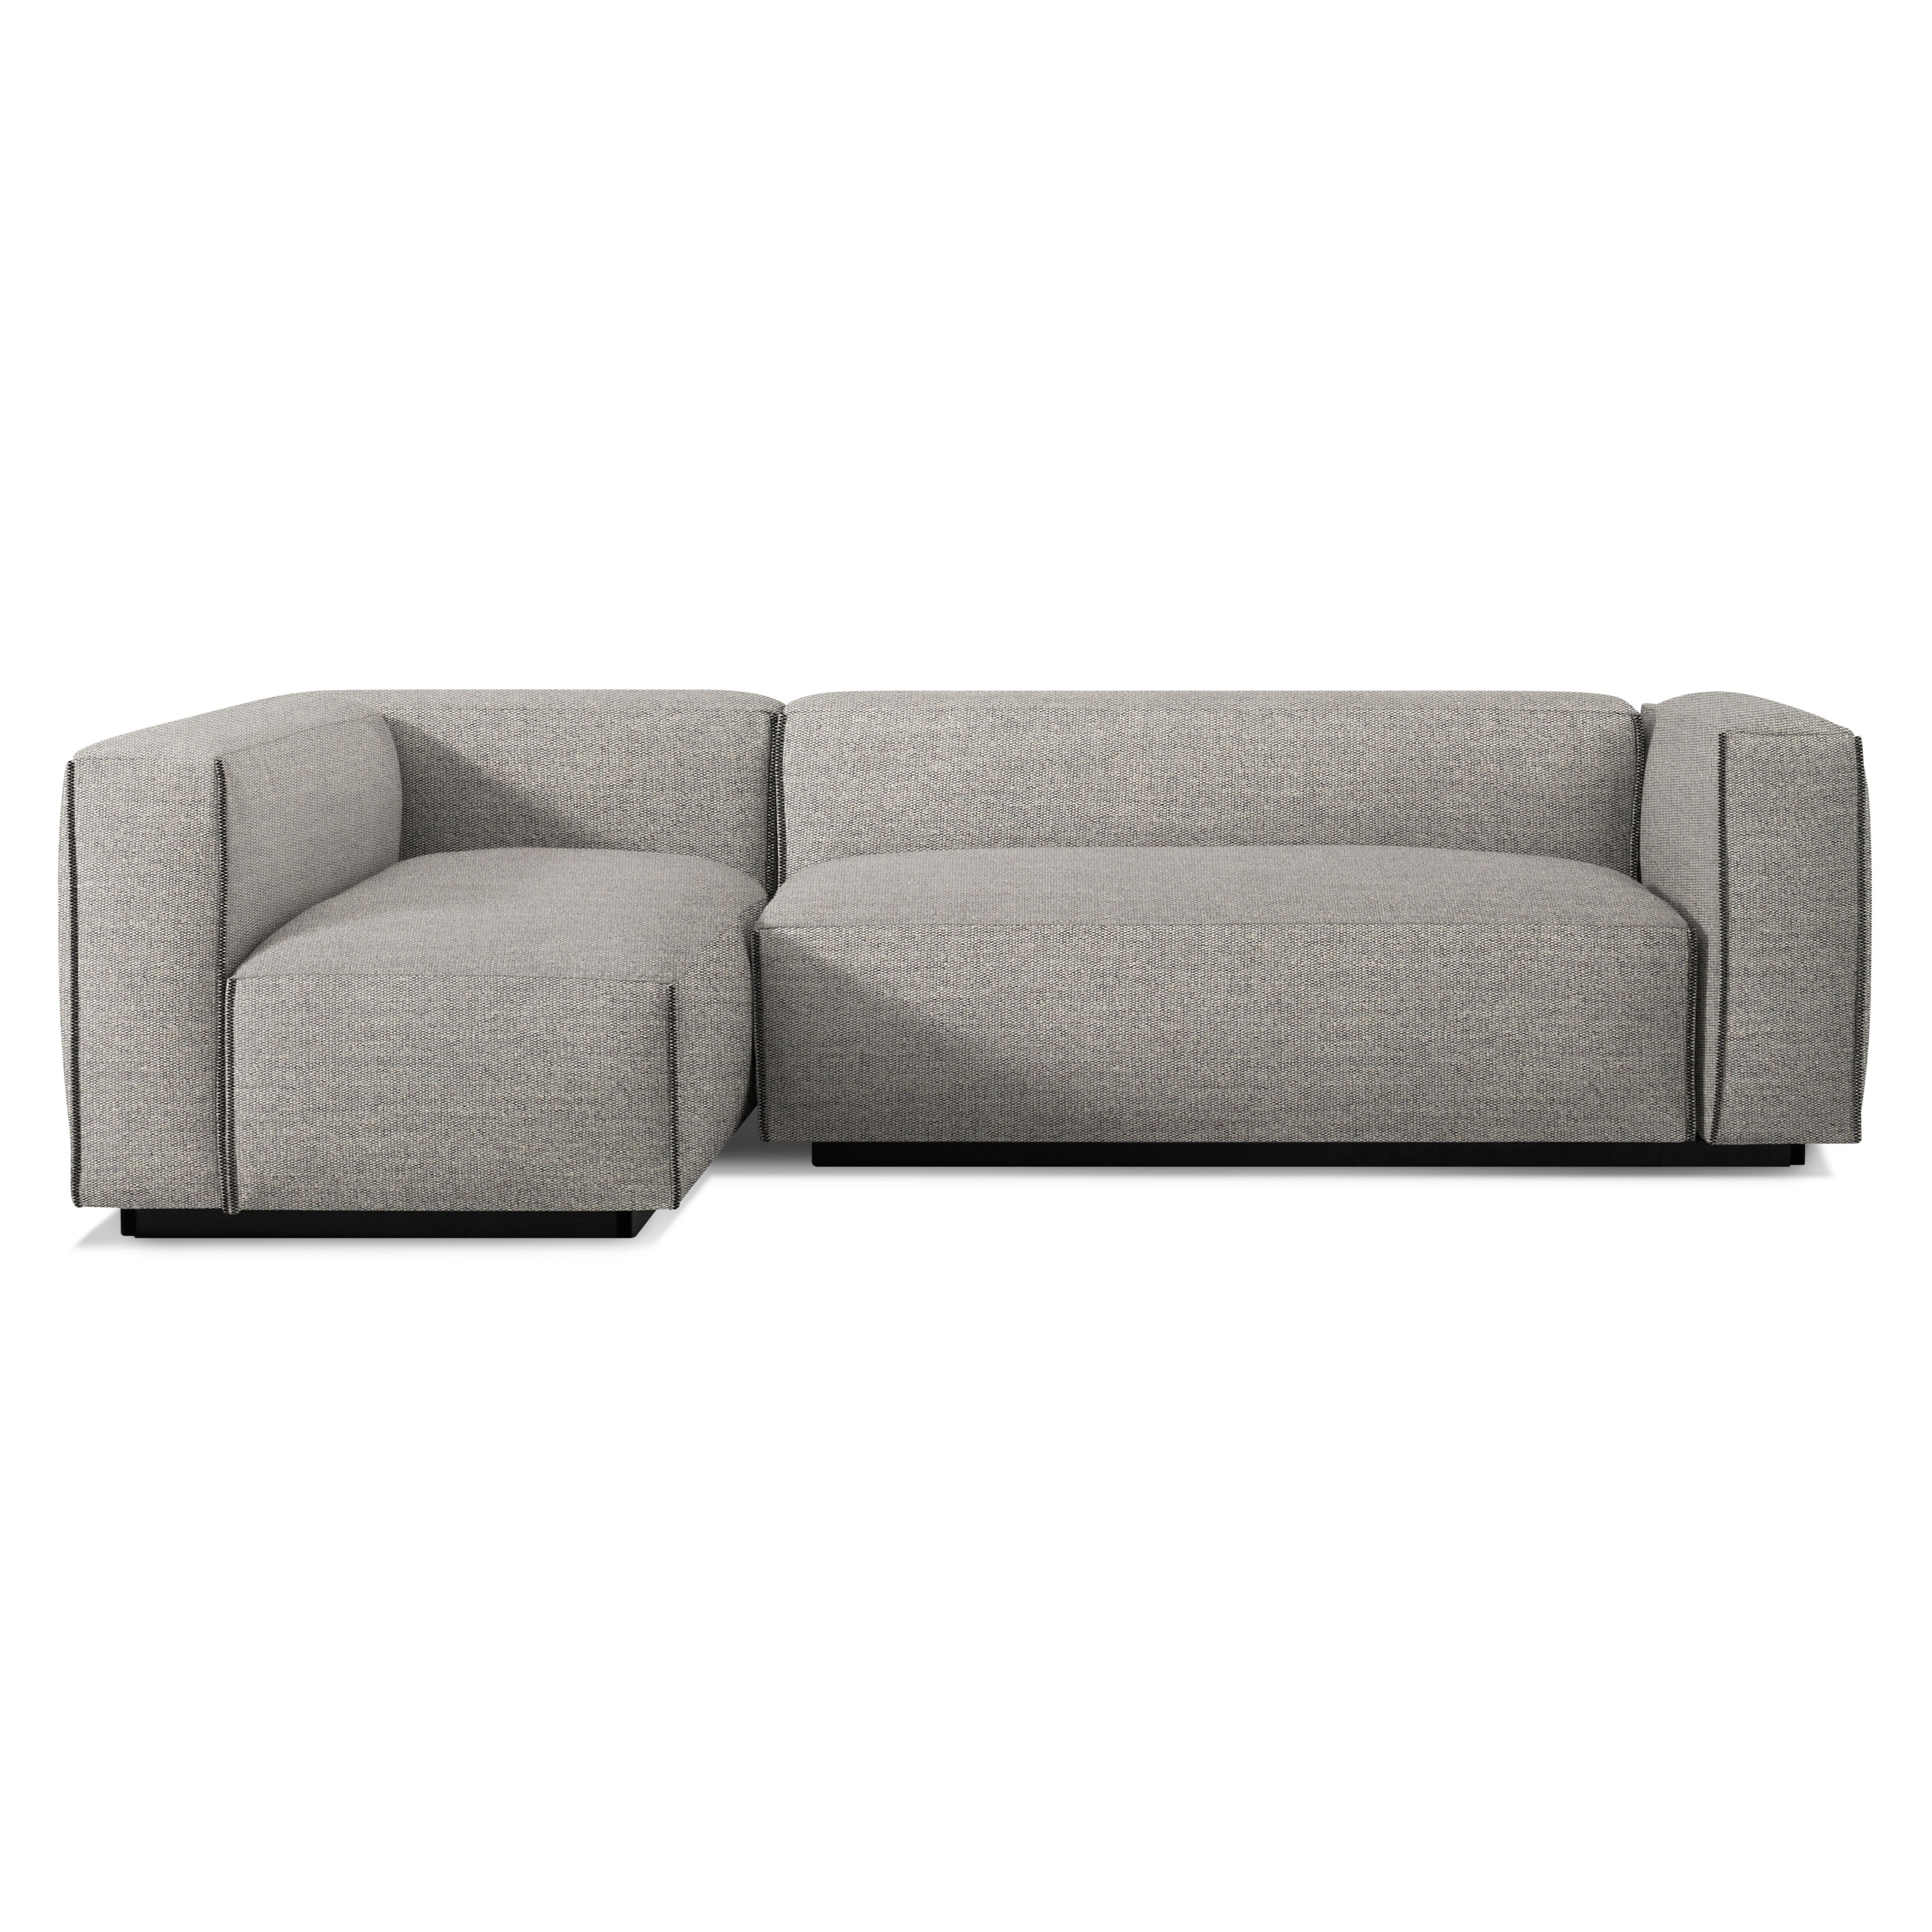 Latest Newmarket Ontario Sectional Sofas Throughout Cleon Small Modern Sectional Sofa (View 17 of 20)